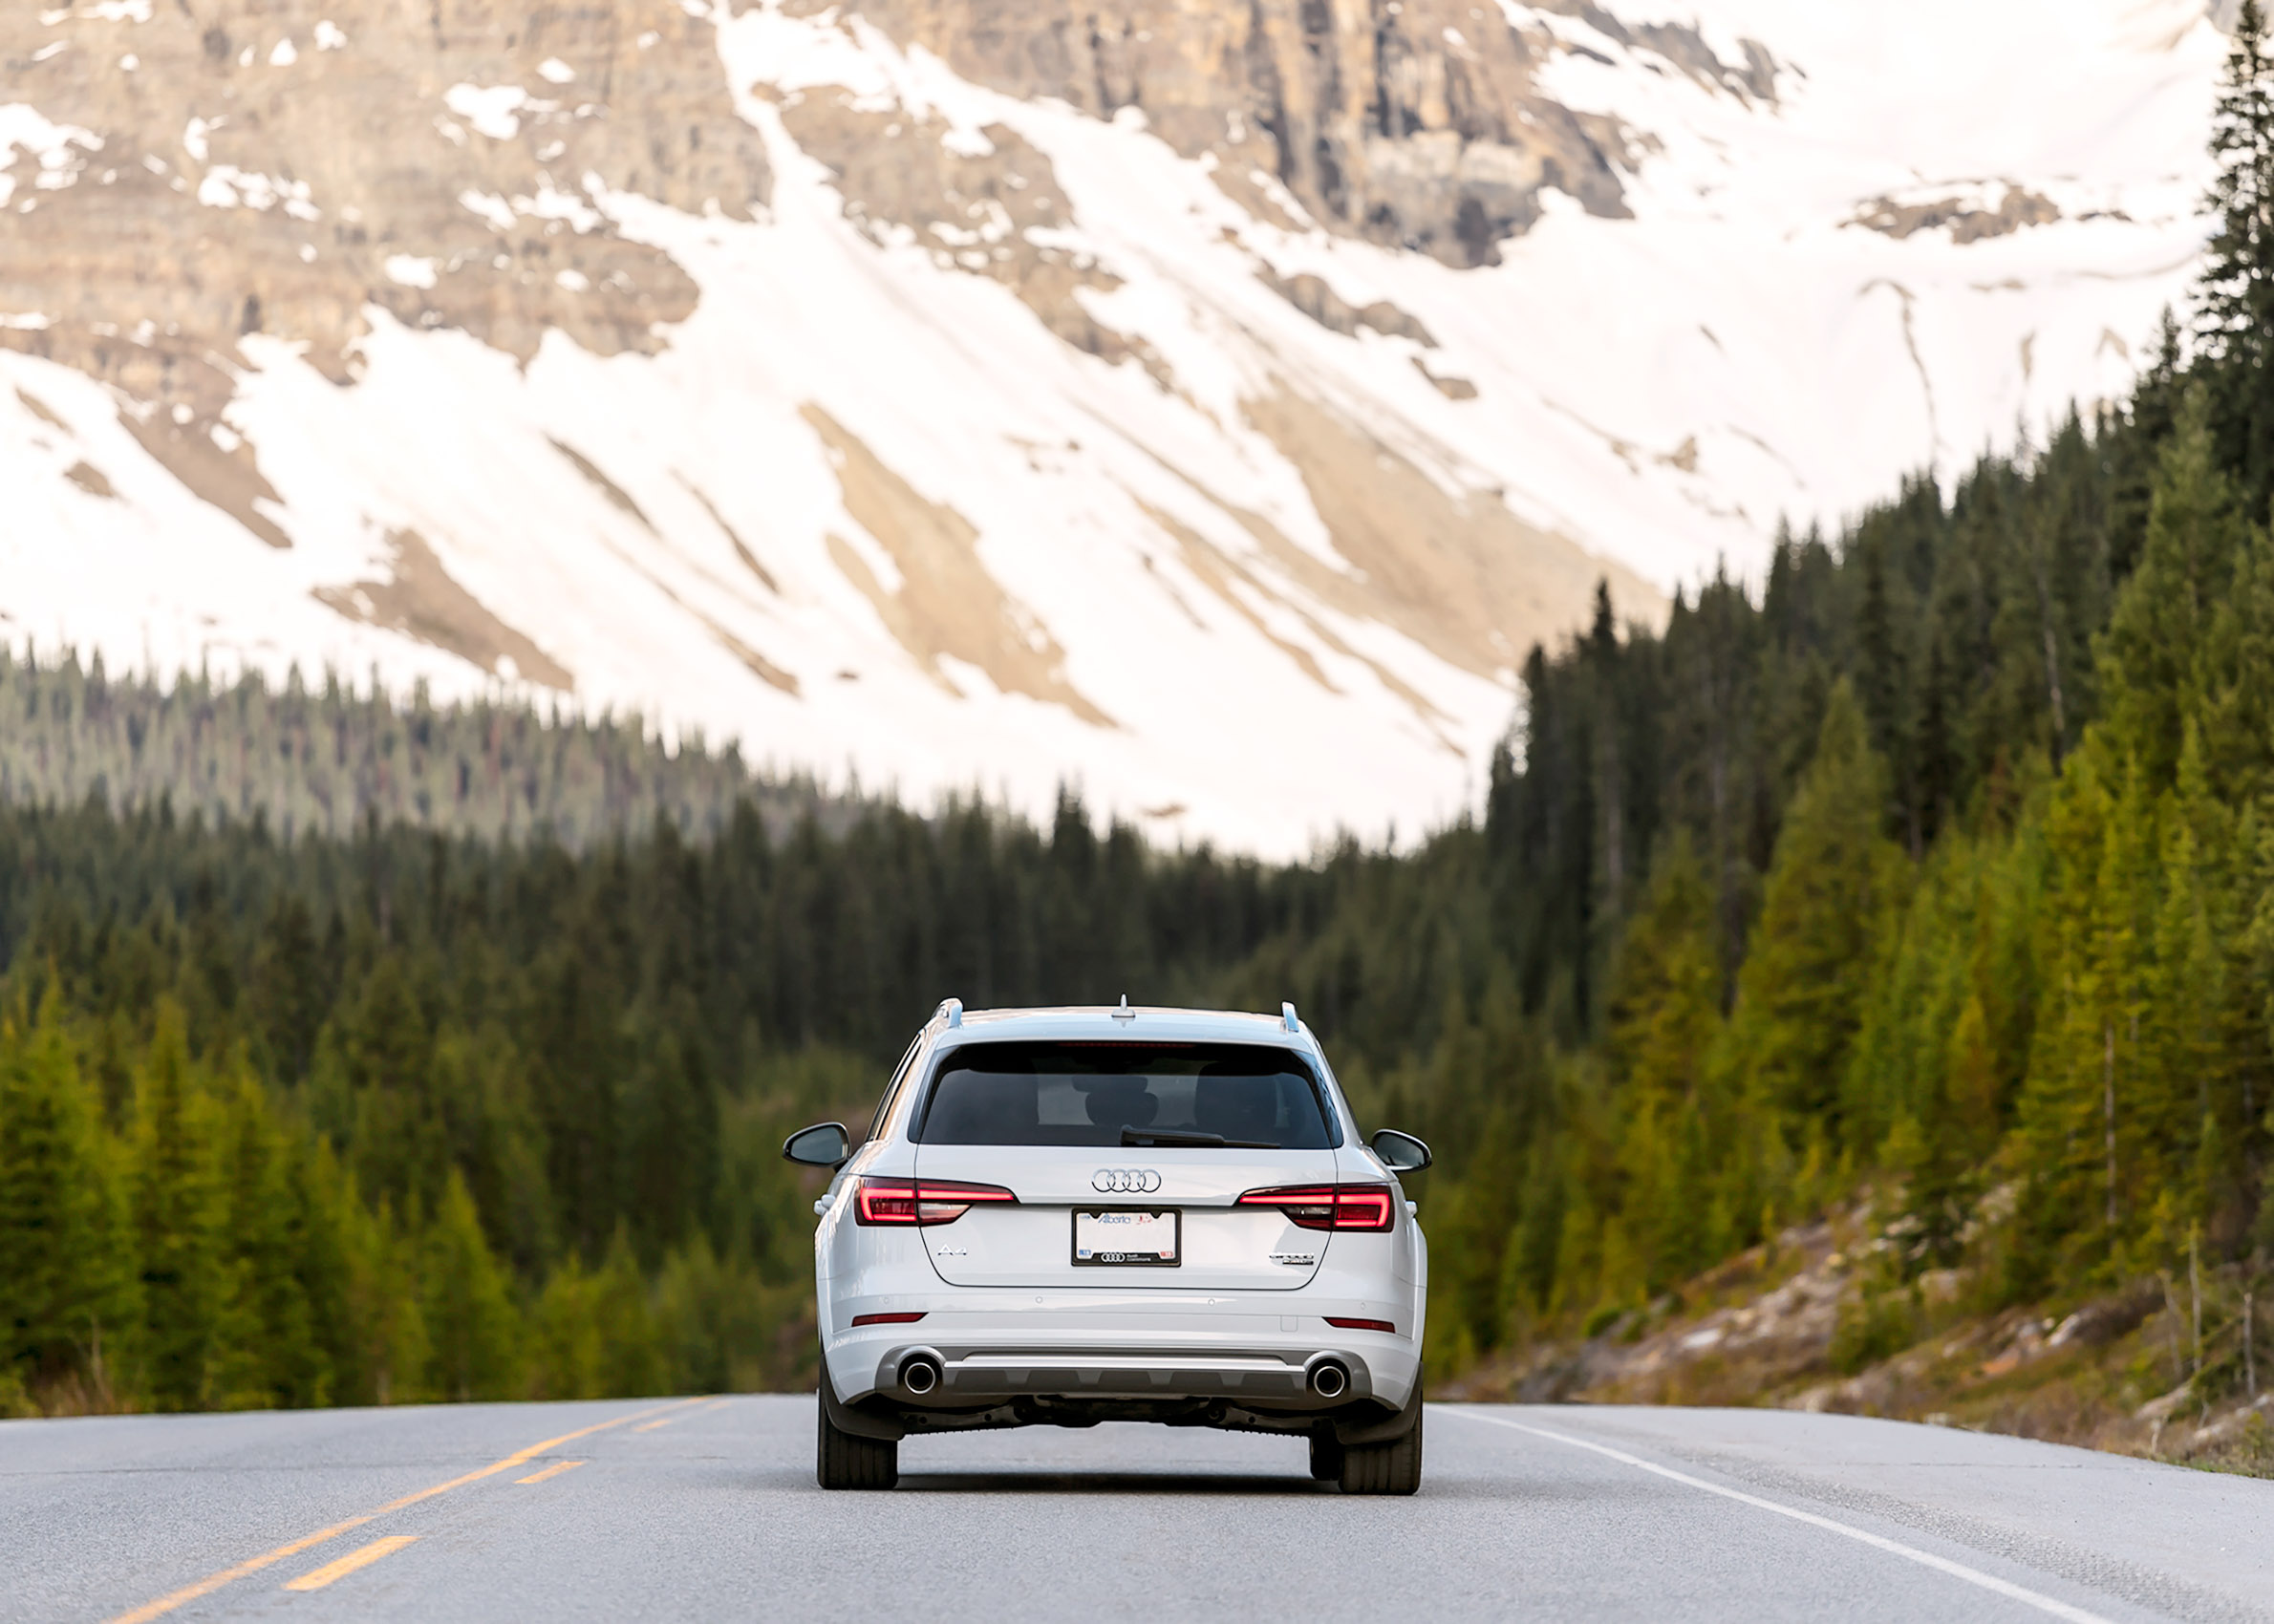 Audi All Road Audi Canada Karl Lee Photography Alberta Canada Banff National Park